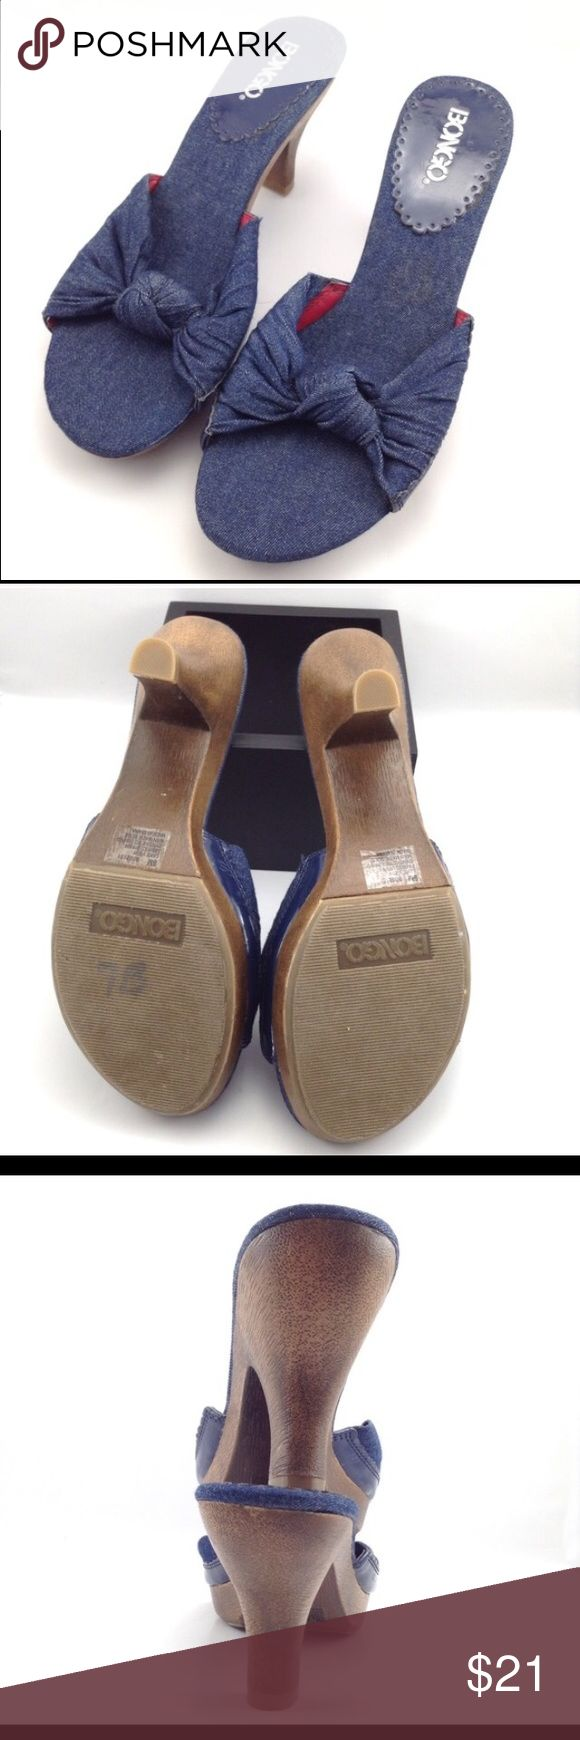 """BONGO knottted denim heels EUC!! BONGO Lake View style. No blemishes! Cute denim uppers and sole with faux wooden 3"""" heels. BONGO Shoes Heels"""